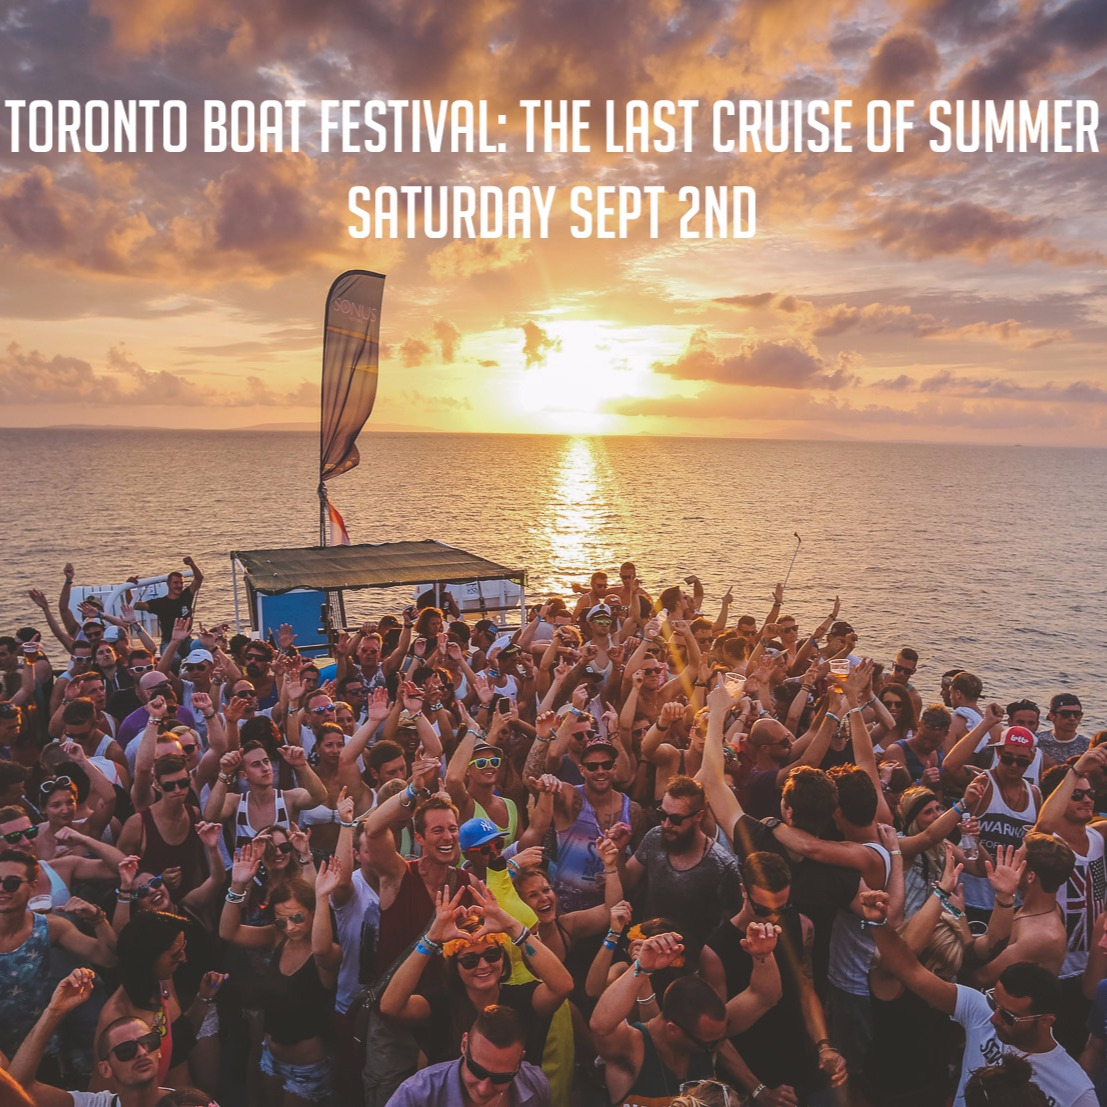 Toronto Boat Festival Presents: The Last Cruise of Summer - Sat Sept 2nd |